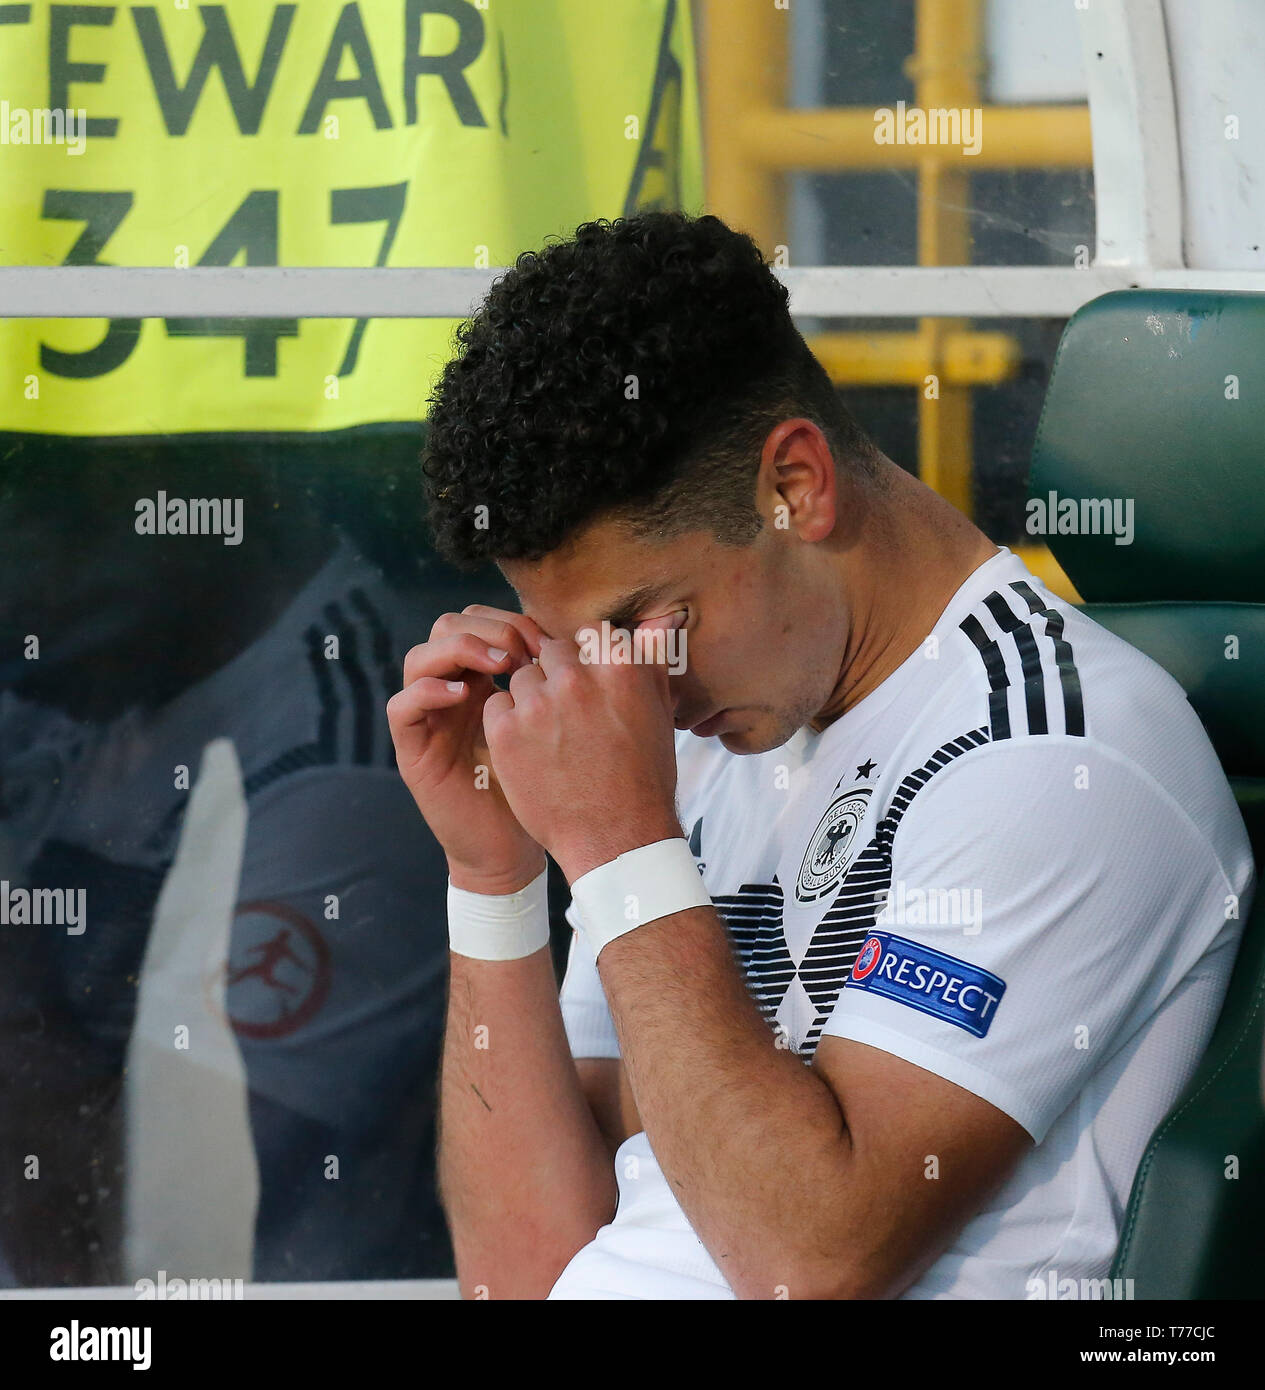 Tallaght Stadium, Dublin, Ireland. 4th May, 2019. UEFA Under 17 European Football Championships, Italy versus Germany; A tearful Kerim Calhanoglu of Germany U17 at the full time whistle Credit: Action Plus Sports/Alamy Live News - Stock Image